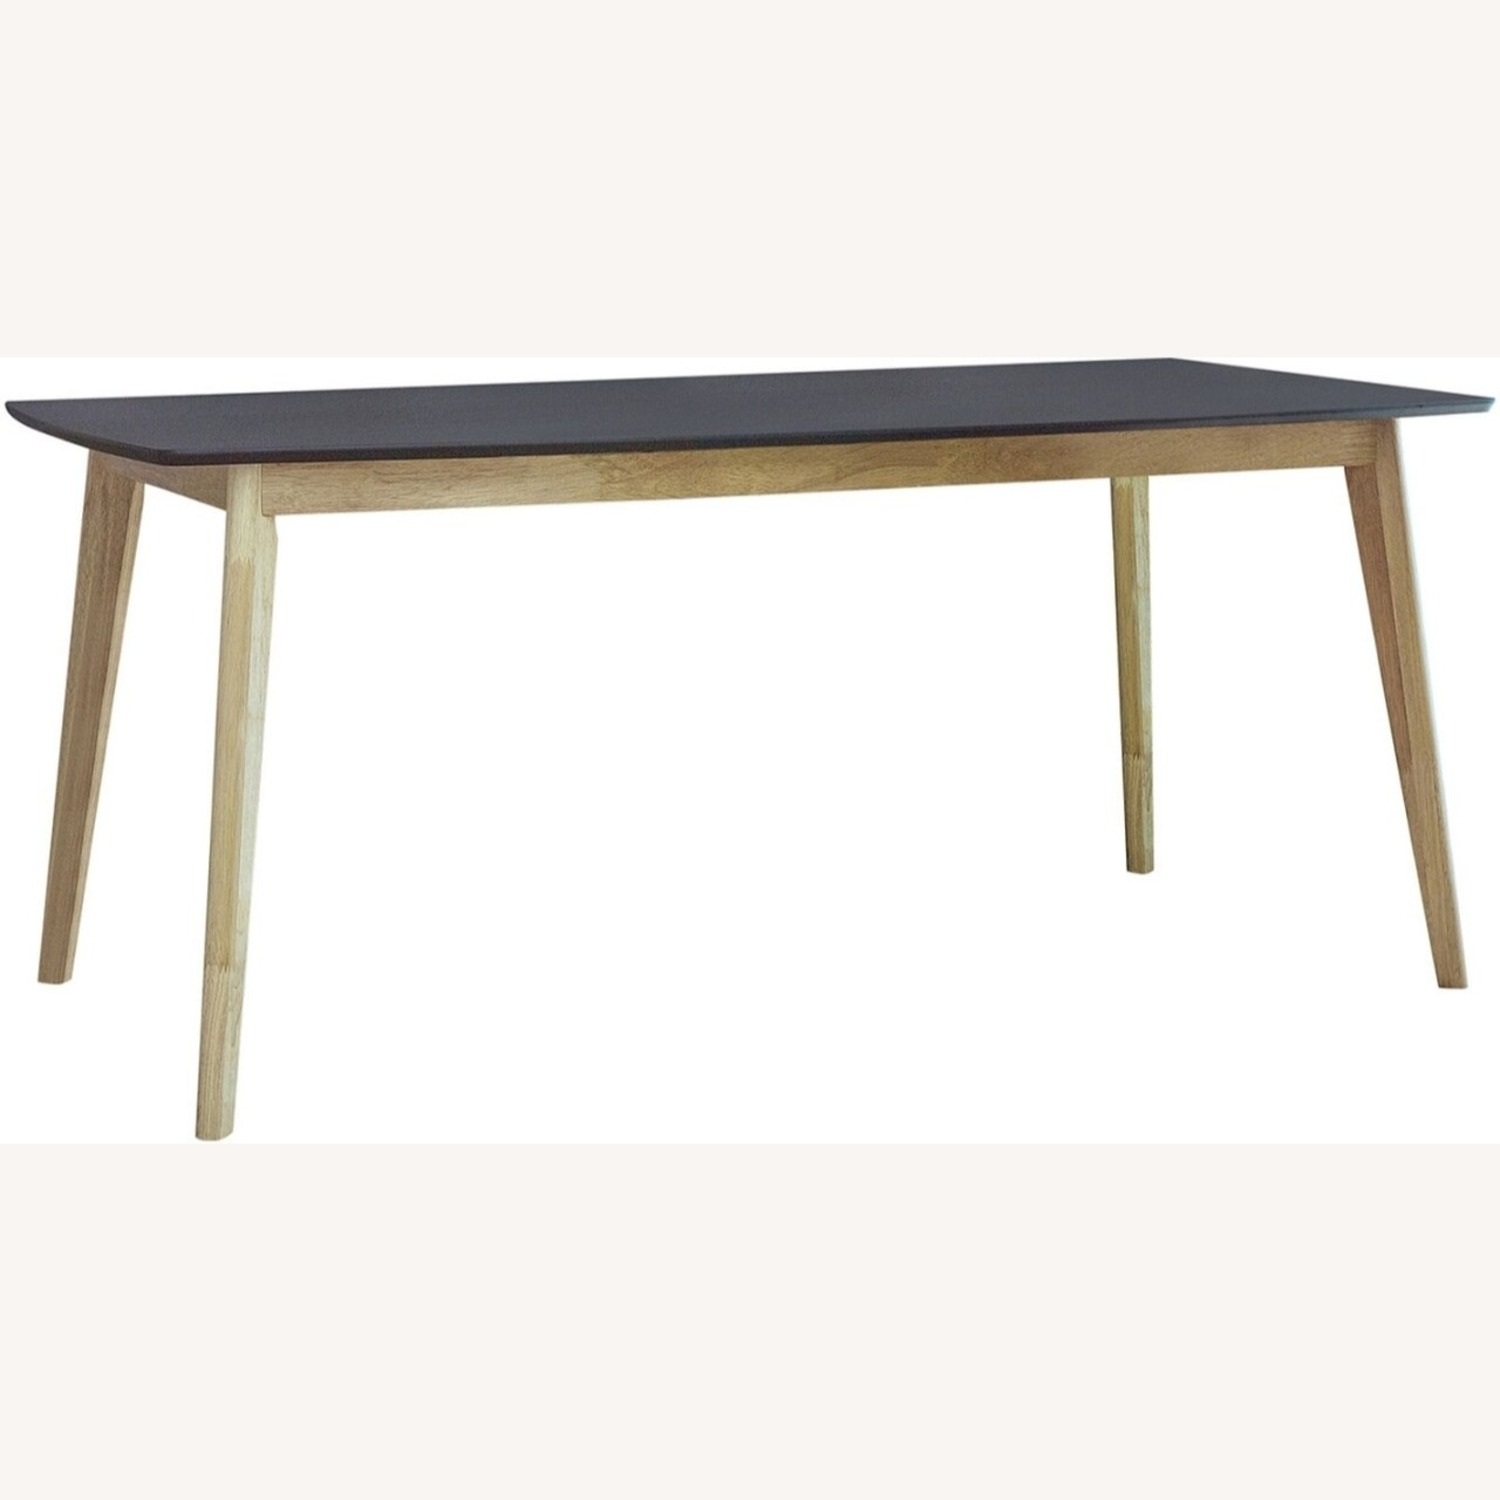 Dining Table In Matte Black And Natural Finish - image-1